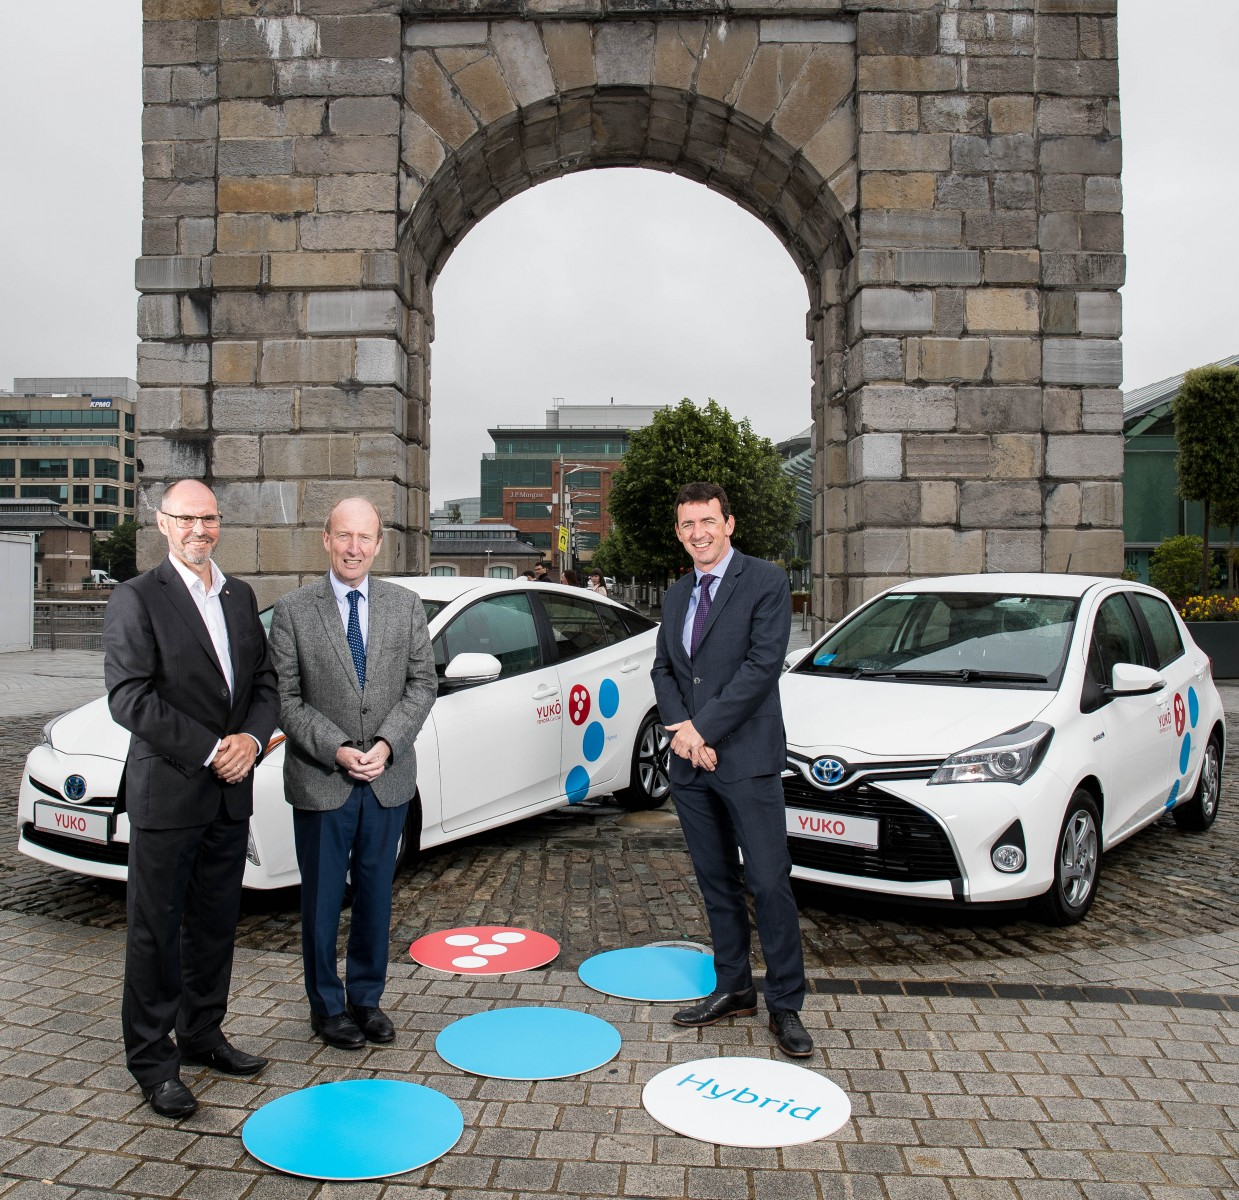 YUKÕ Ireland. From left to right: Mark Adams, Vice President Consumer One & New Mobility, Toyota Motor Europe/ Irish Minster for Transport, Shane Ross Steve Tormey / CEO Toyota Ireland